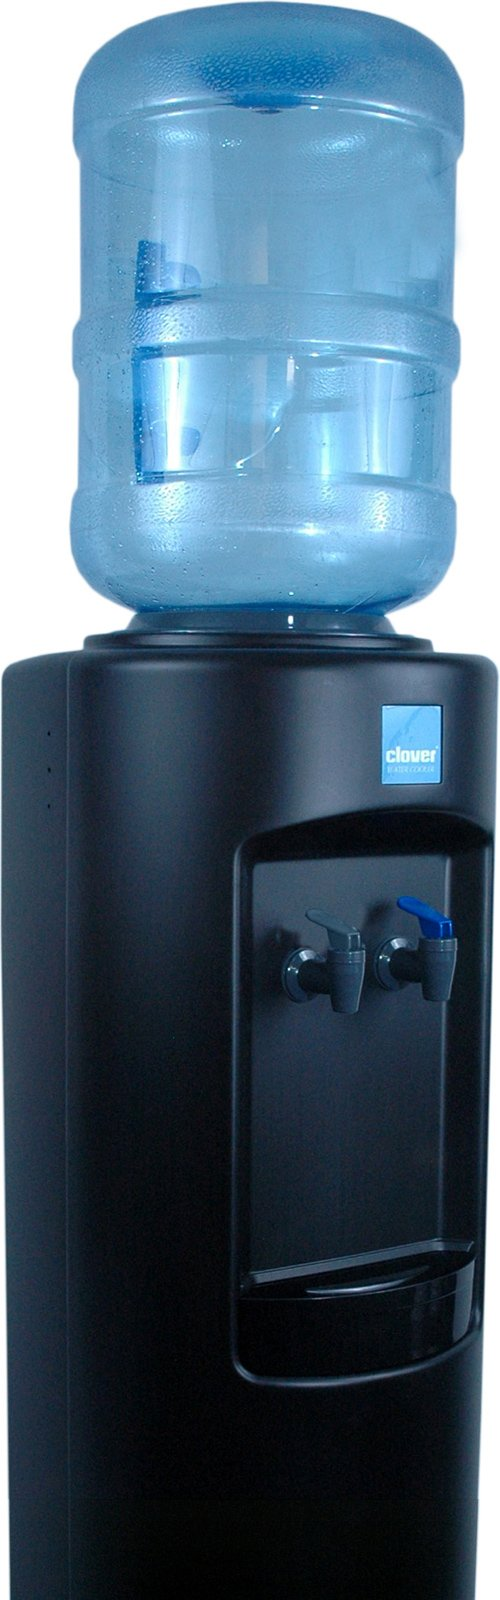 Clover B7B Warm and Cold Water Dispenser Black - Top View